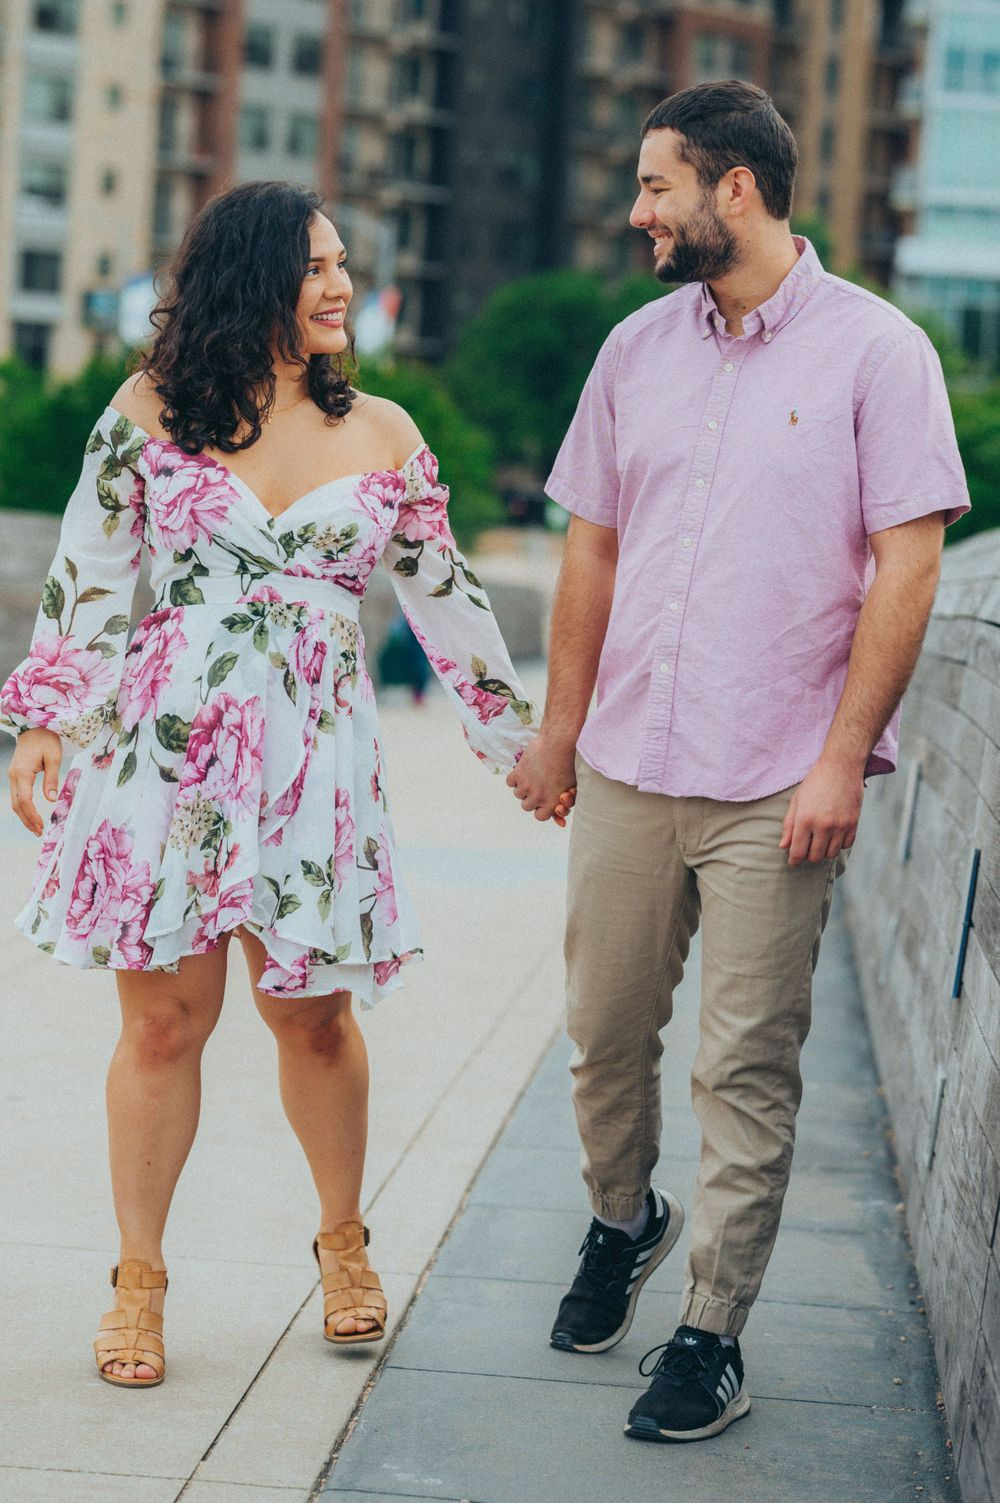 Jessica & Aldo Austin Engagement at Pfluger Pedestrian Bridge walking